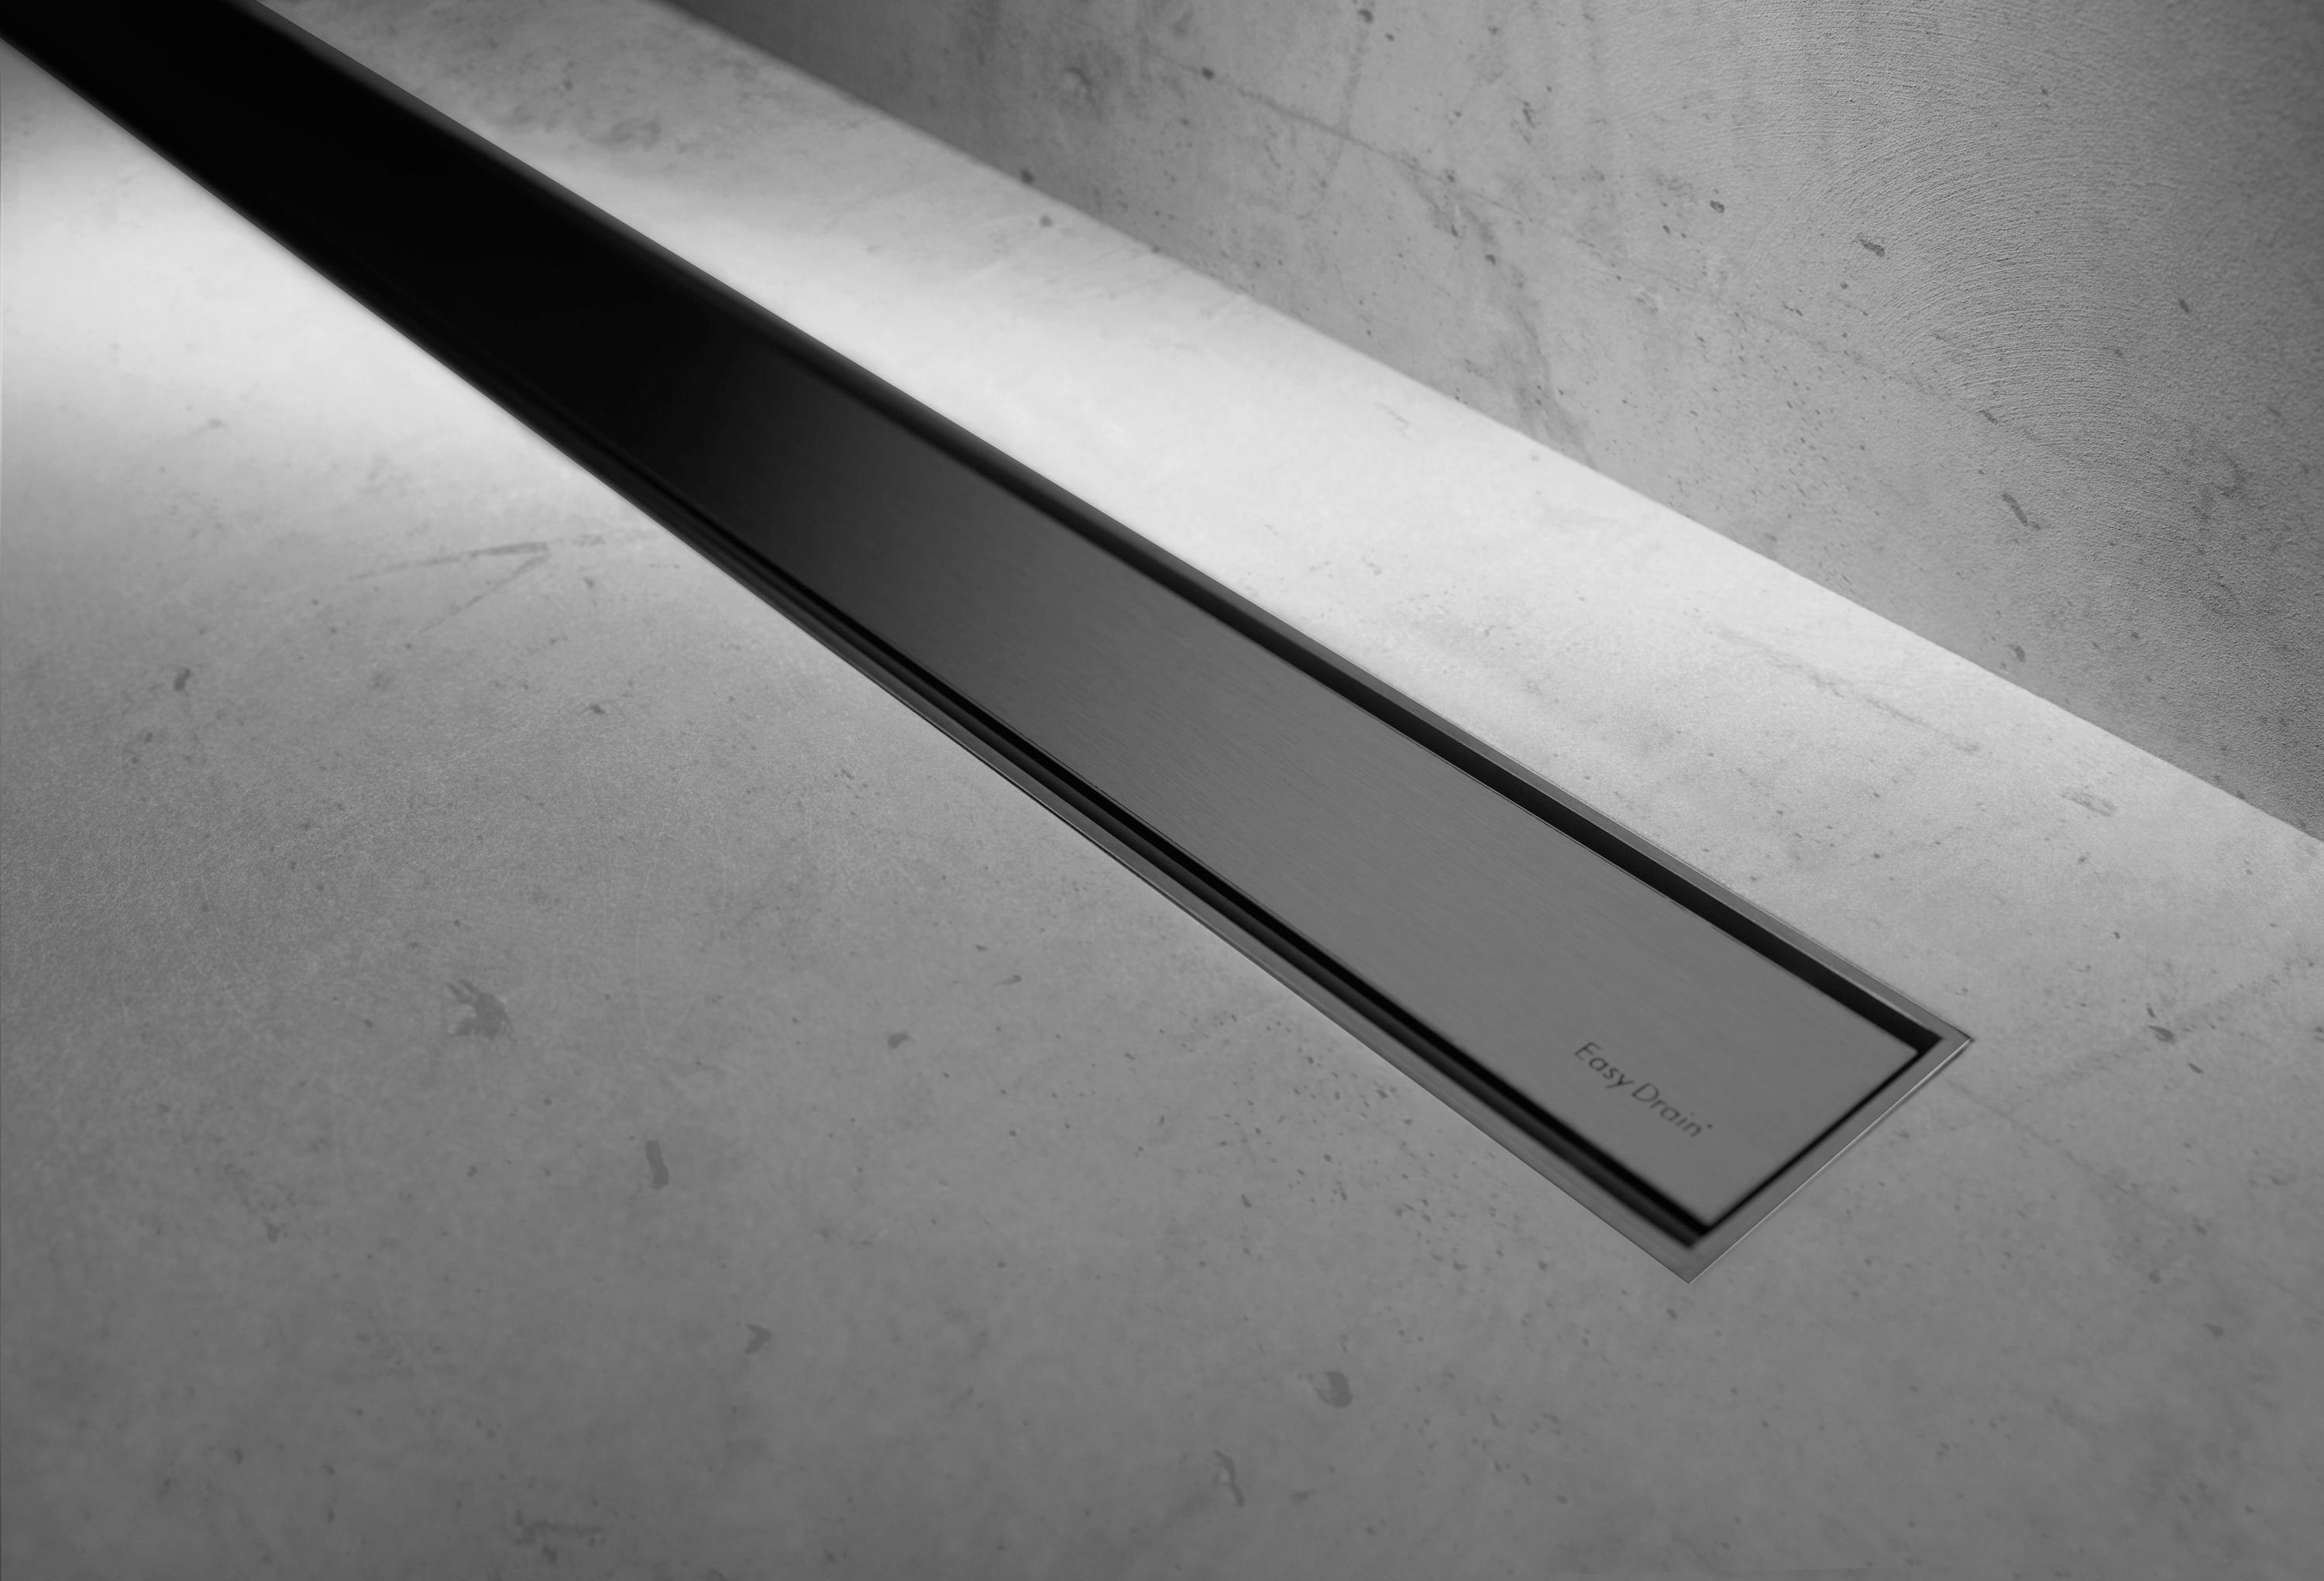 Modulo Taf Black Chrome Linear Drains From Easy Drain